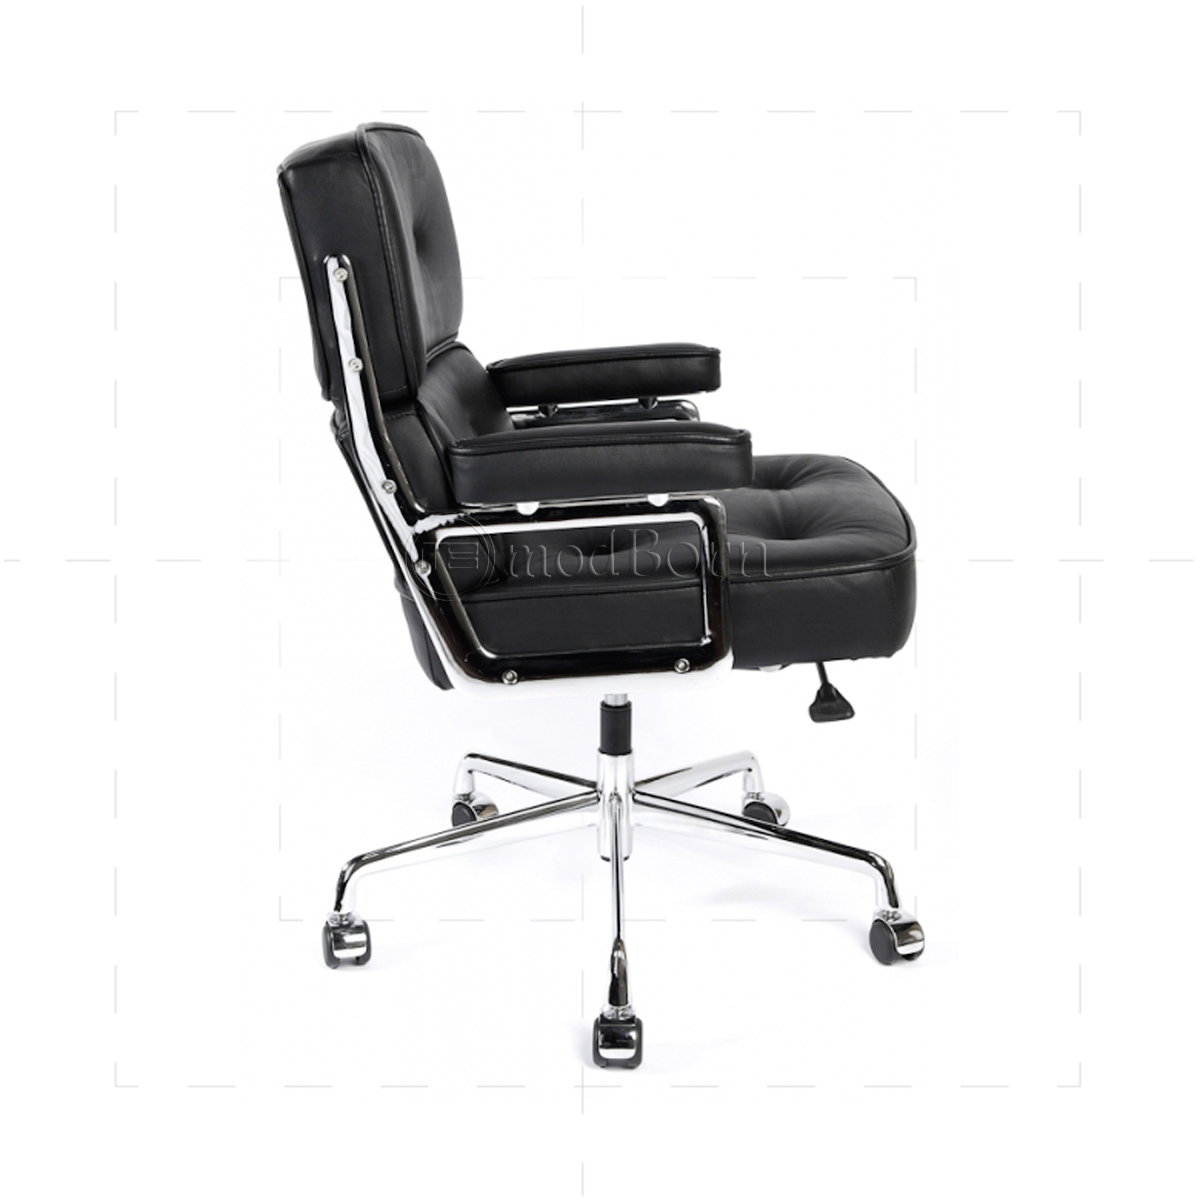 Ordinaire EA104 Eames Style Office Lobby Black Leather Executive Chair   Replica